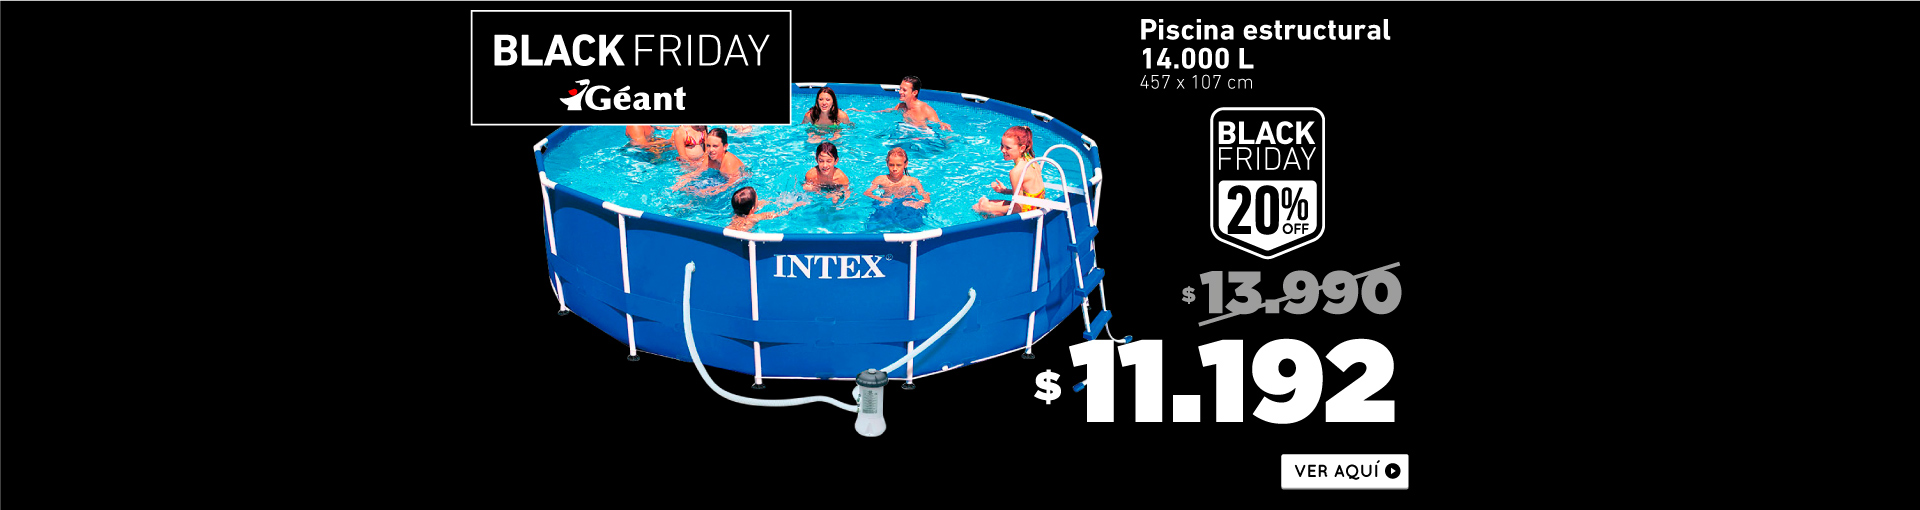 h-04-808781-piscina-BLACKFRIDAY